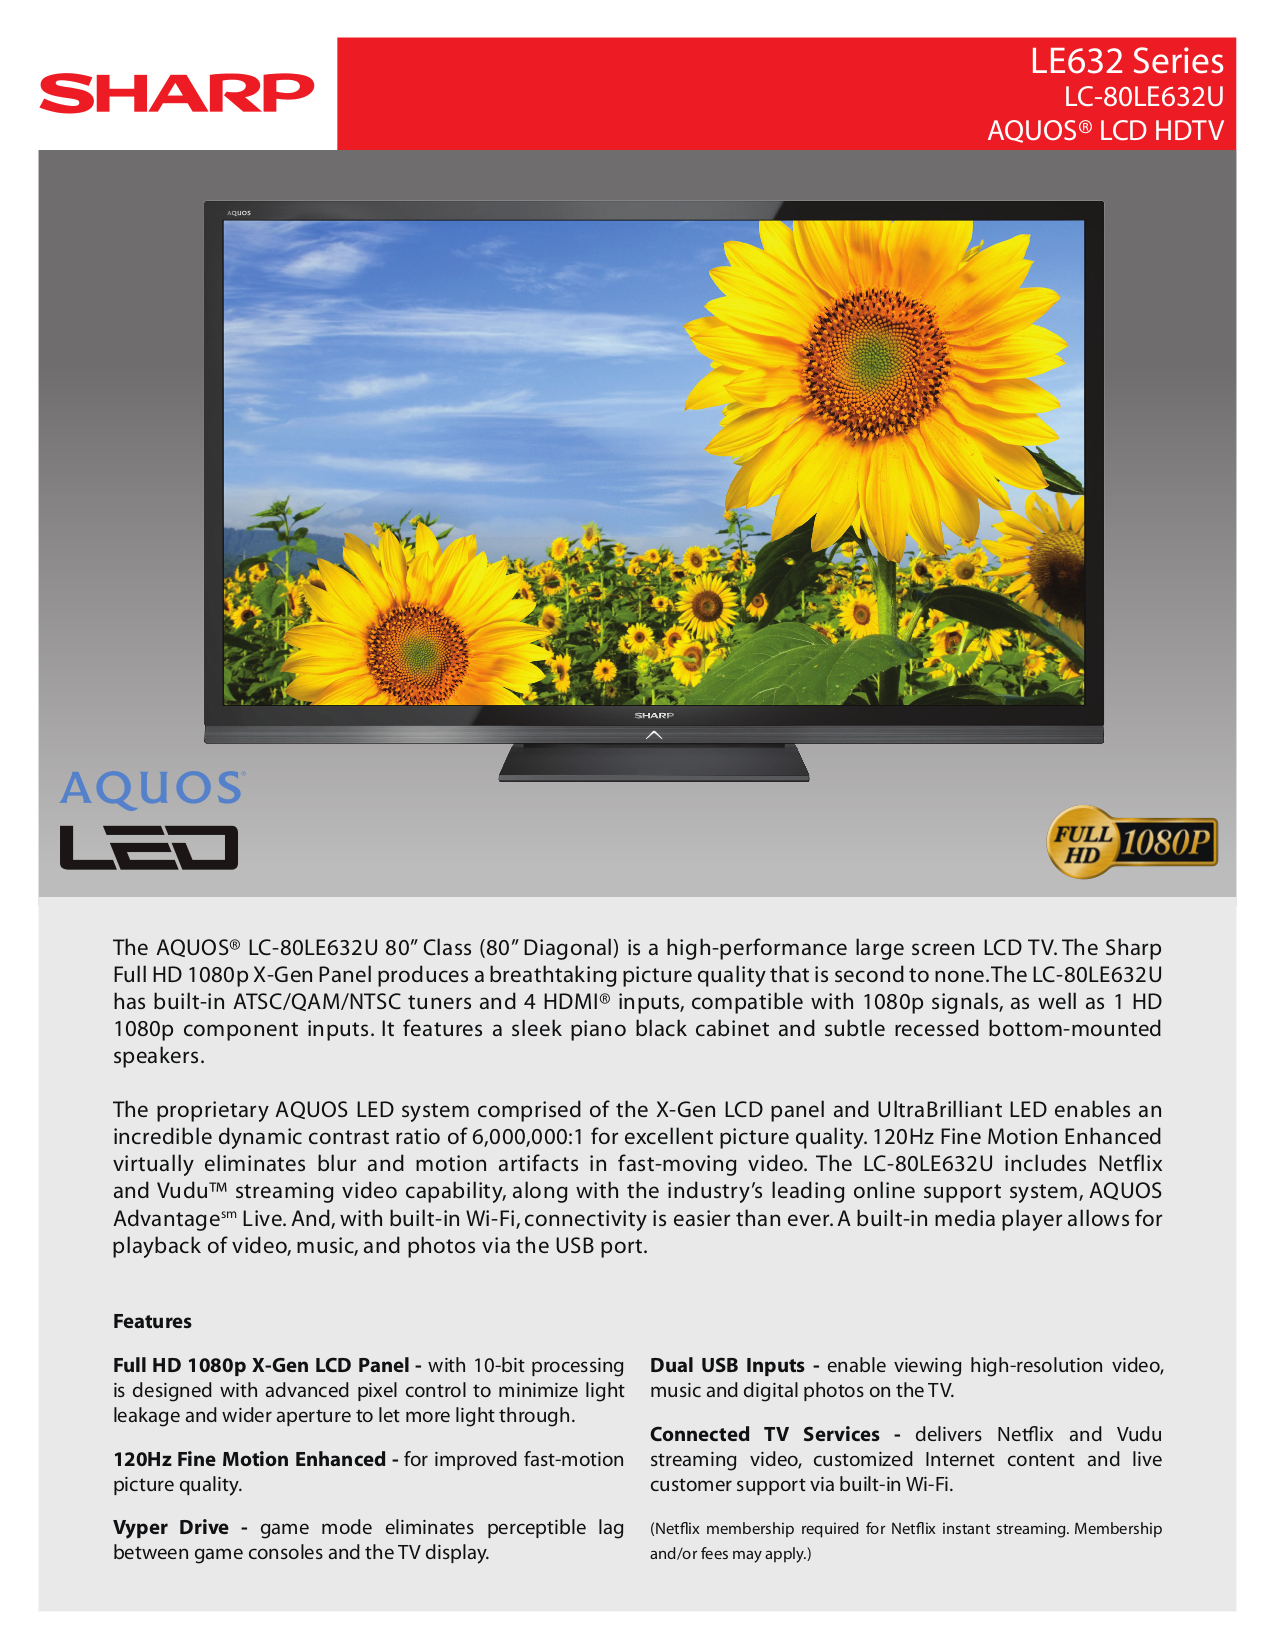 download free pdf for sharp aquos lc 80le632u lcd tv manual rh umlib com Sharp LC 80LE632U Parts sharp lc-80le632u manual